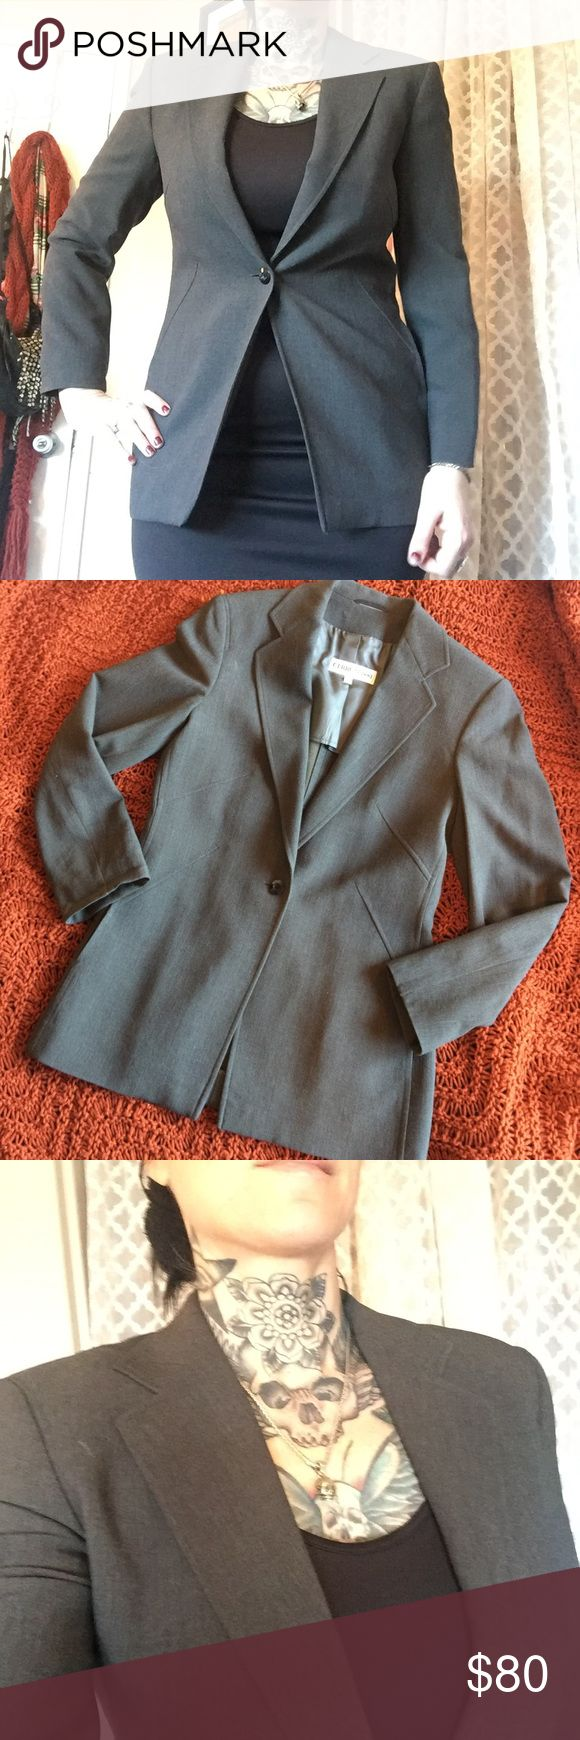 Italian designer office blazer Used only twice. Beautiful condition. I'm a size 8 but busty so best fits as an 8 but smaller bustline. Authentic. Cerruti cerruti 1881 Jackets & Coats Blazers